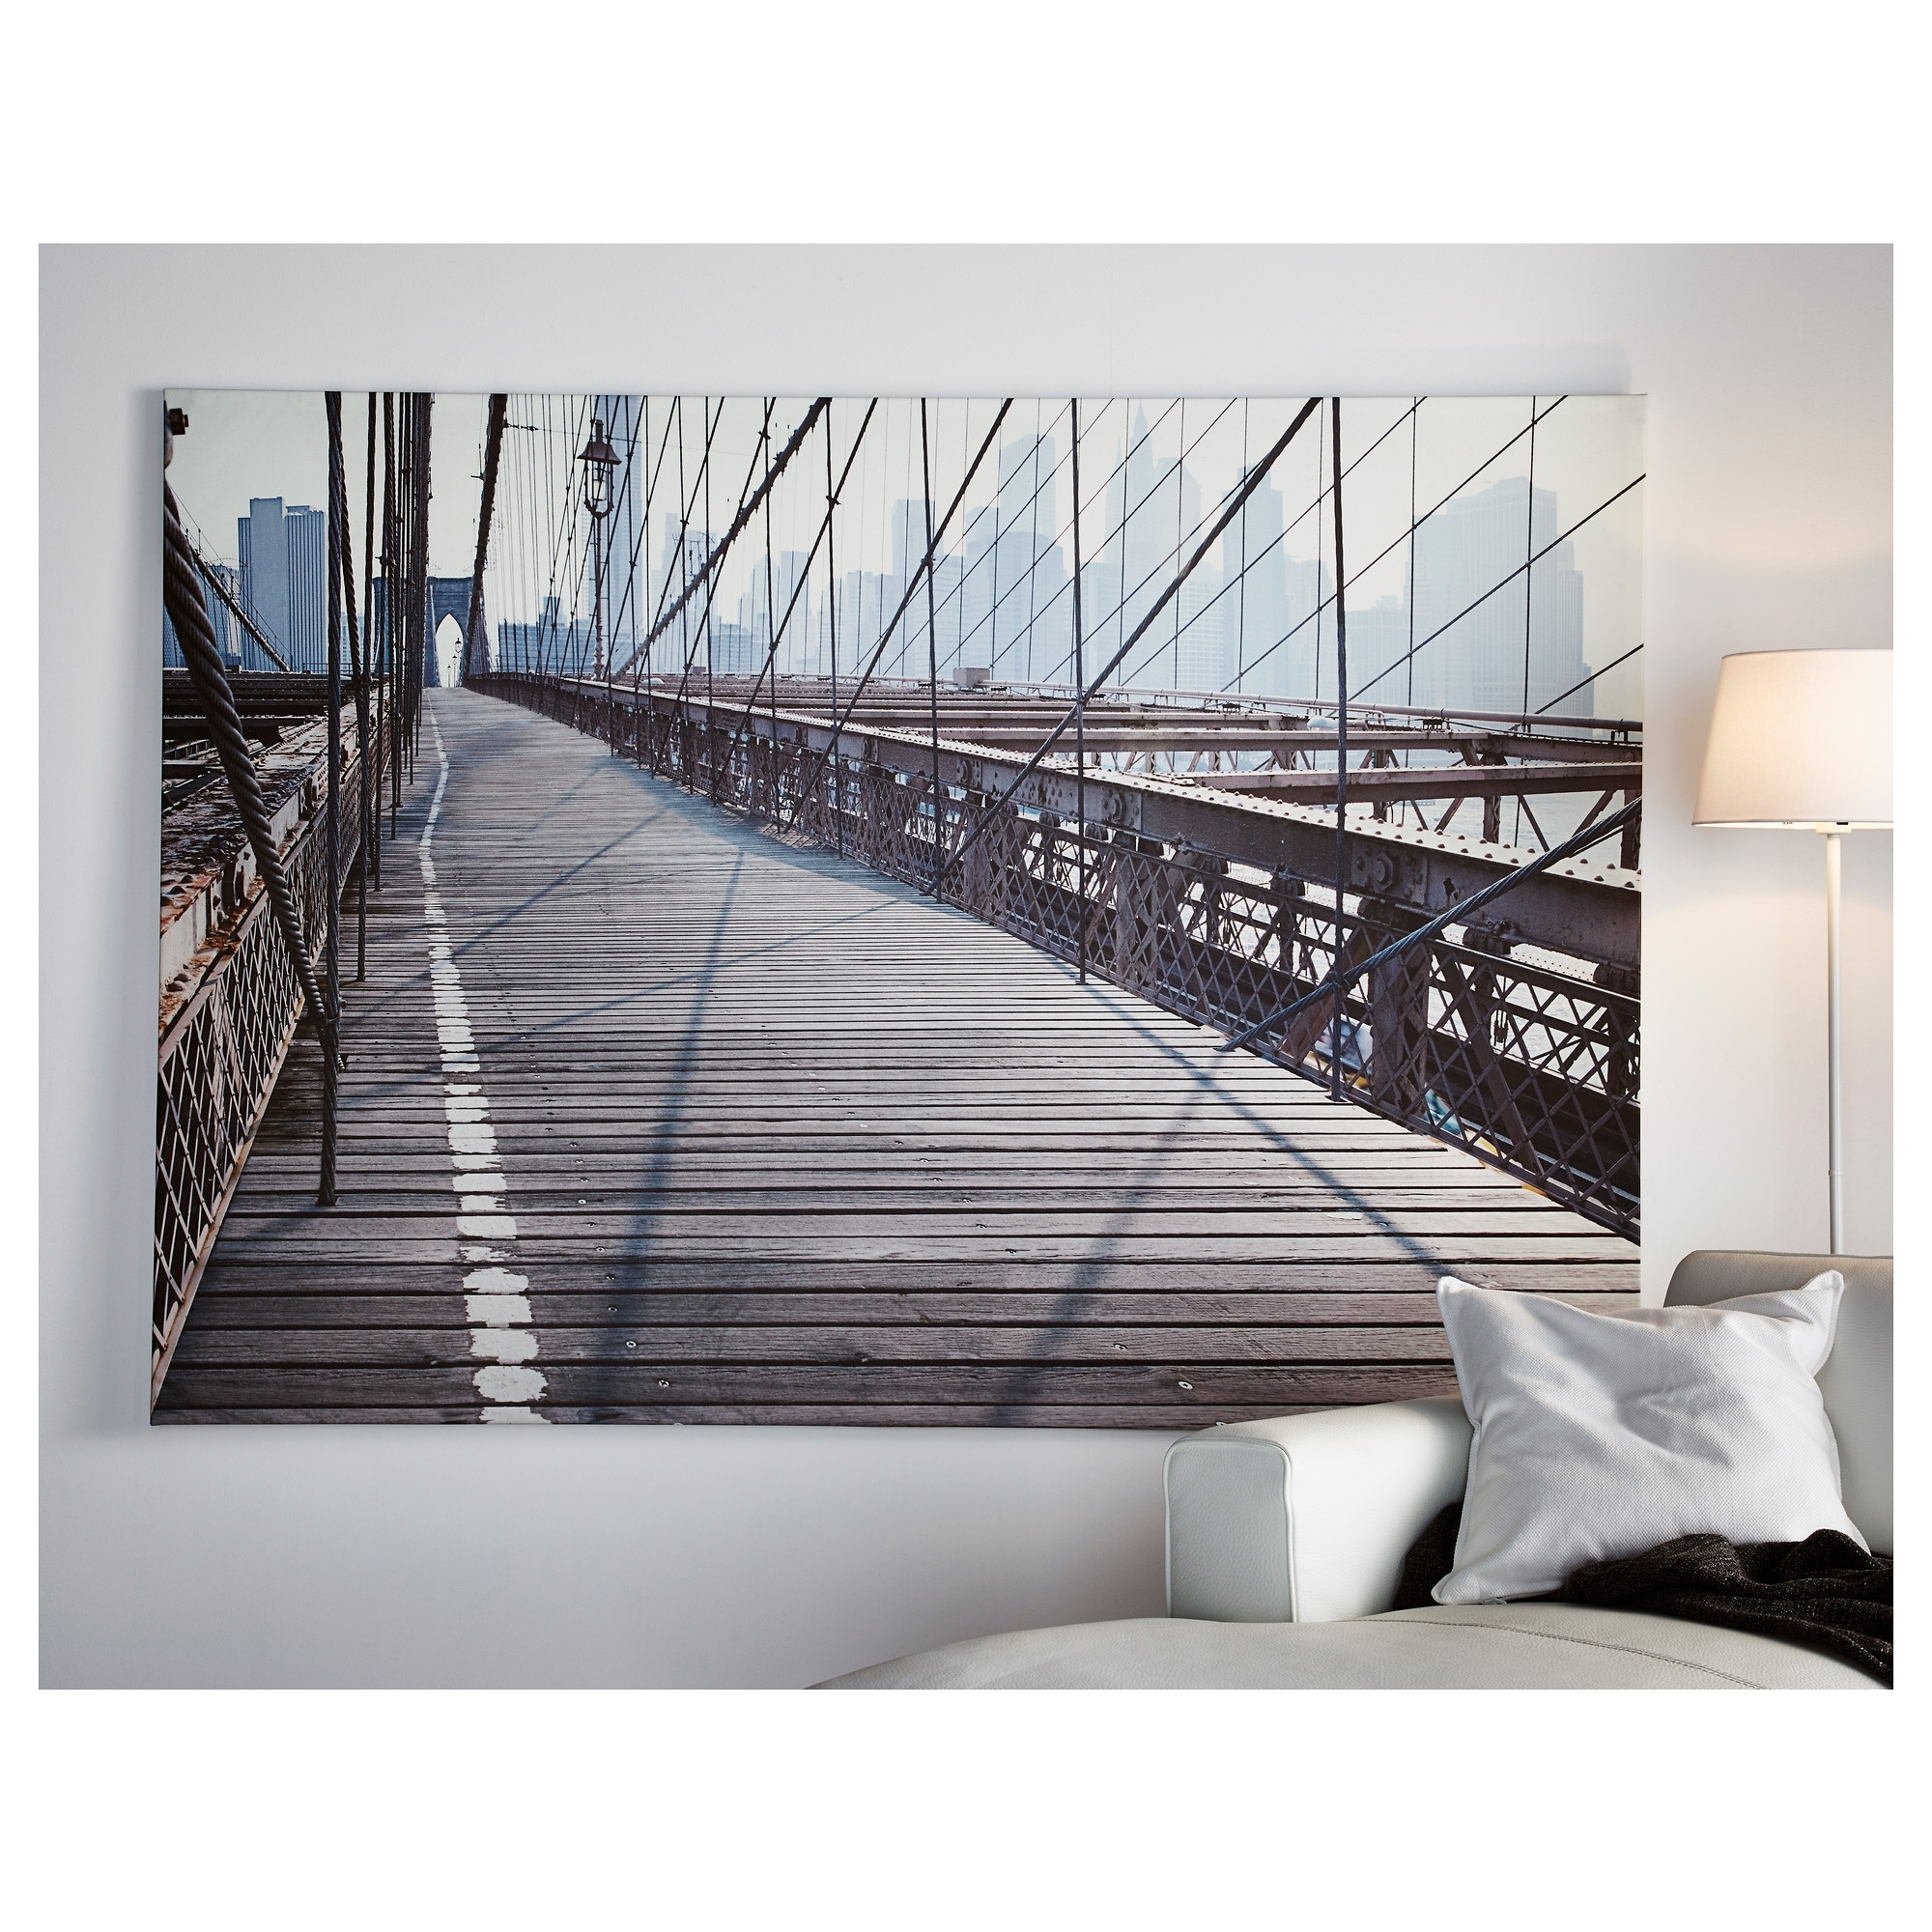 Famous 40 Super Design Ideas Ikea Wall Art Canvas (View 5 of 15)